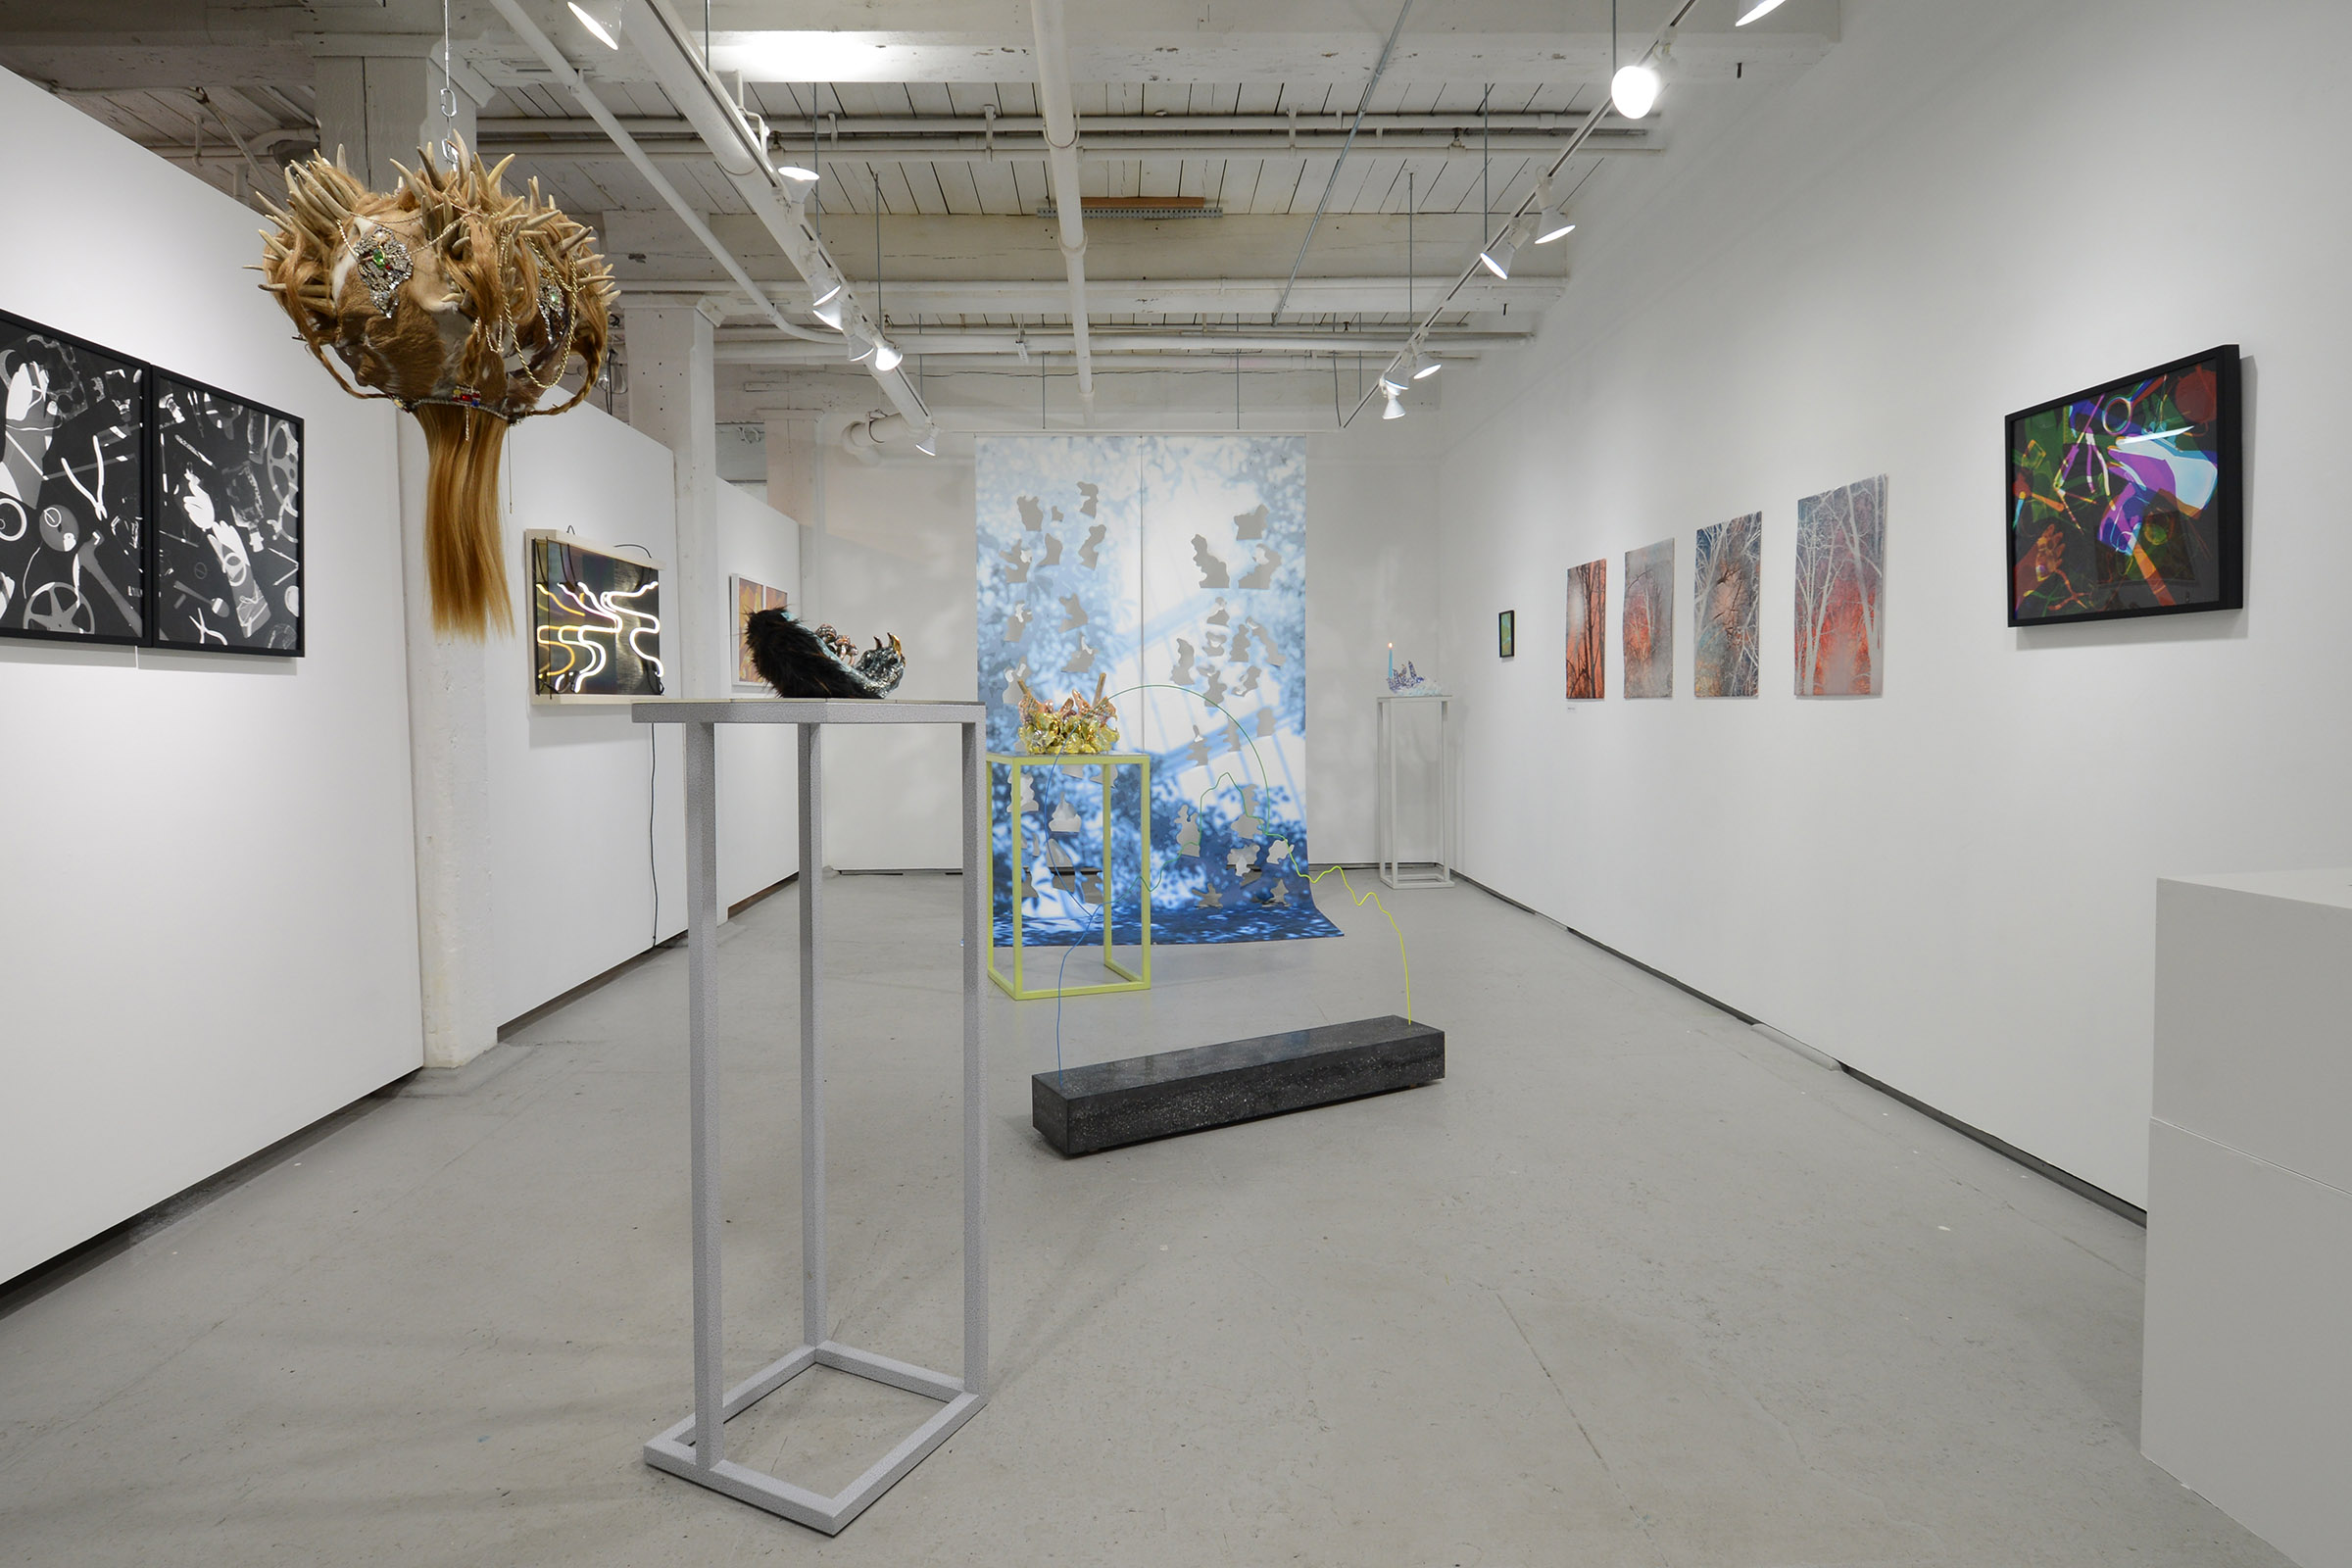 June 15 - July 21 2019       Shadow of the Gradient       Devra Freelander, MaDora Frey, Rachel Guardiola, Roxanne Jackson, Taryn M. McMahon, Kat Ryals, Shelley Smith curated by Ortega y Gasset Projects Co-Director Clare Britt.